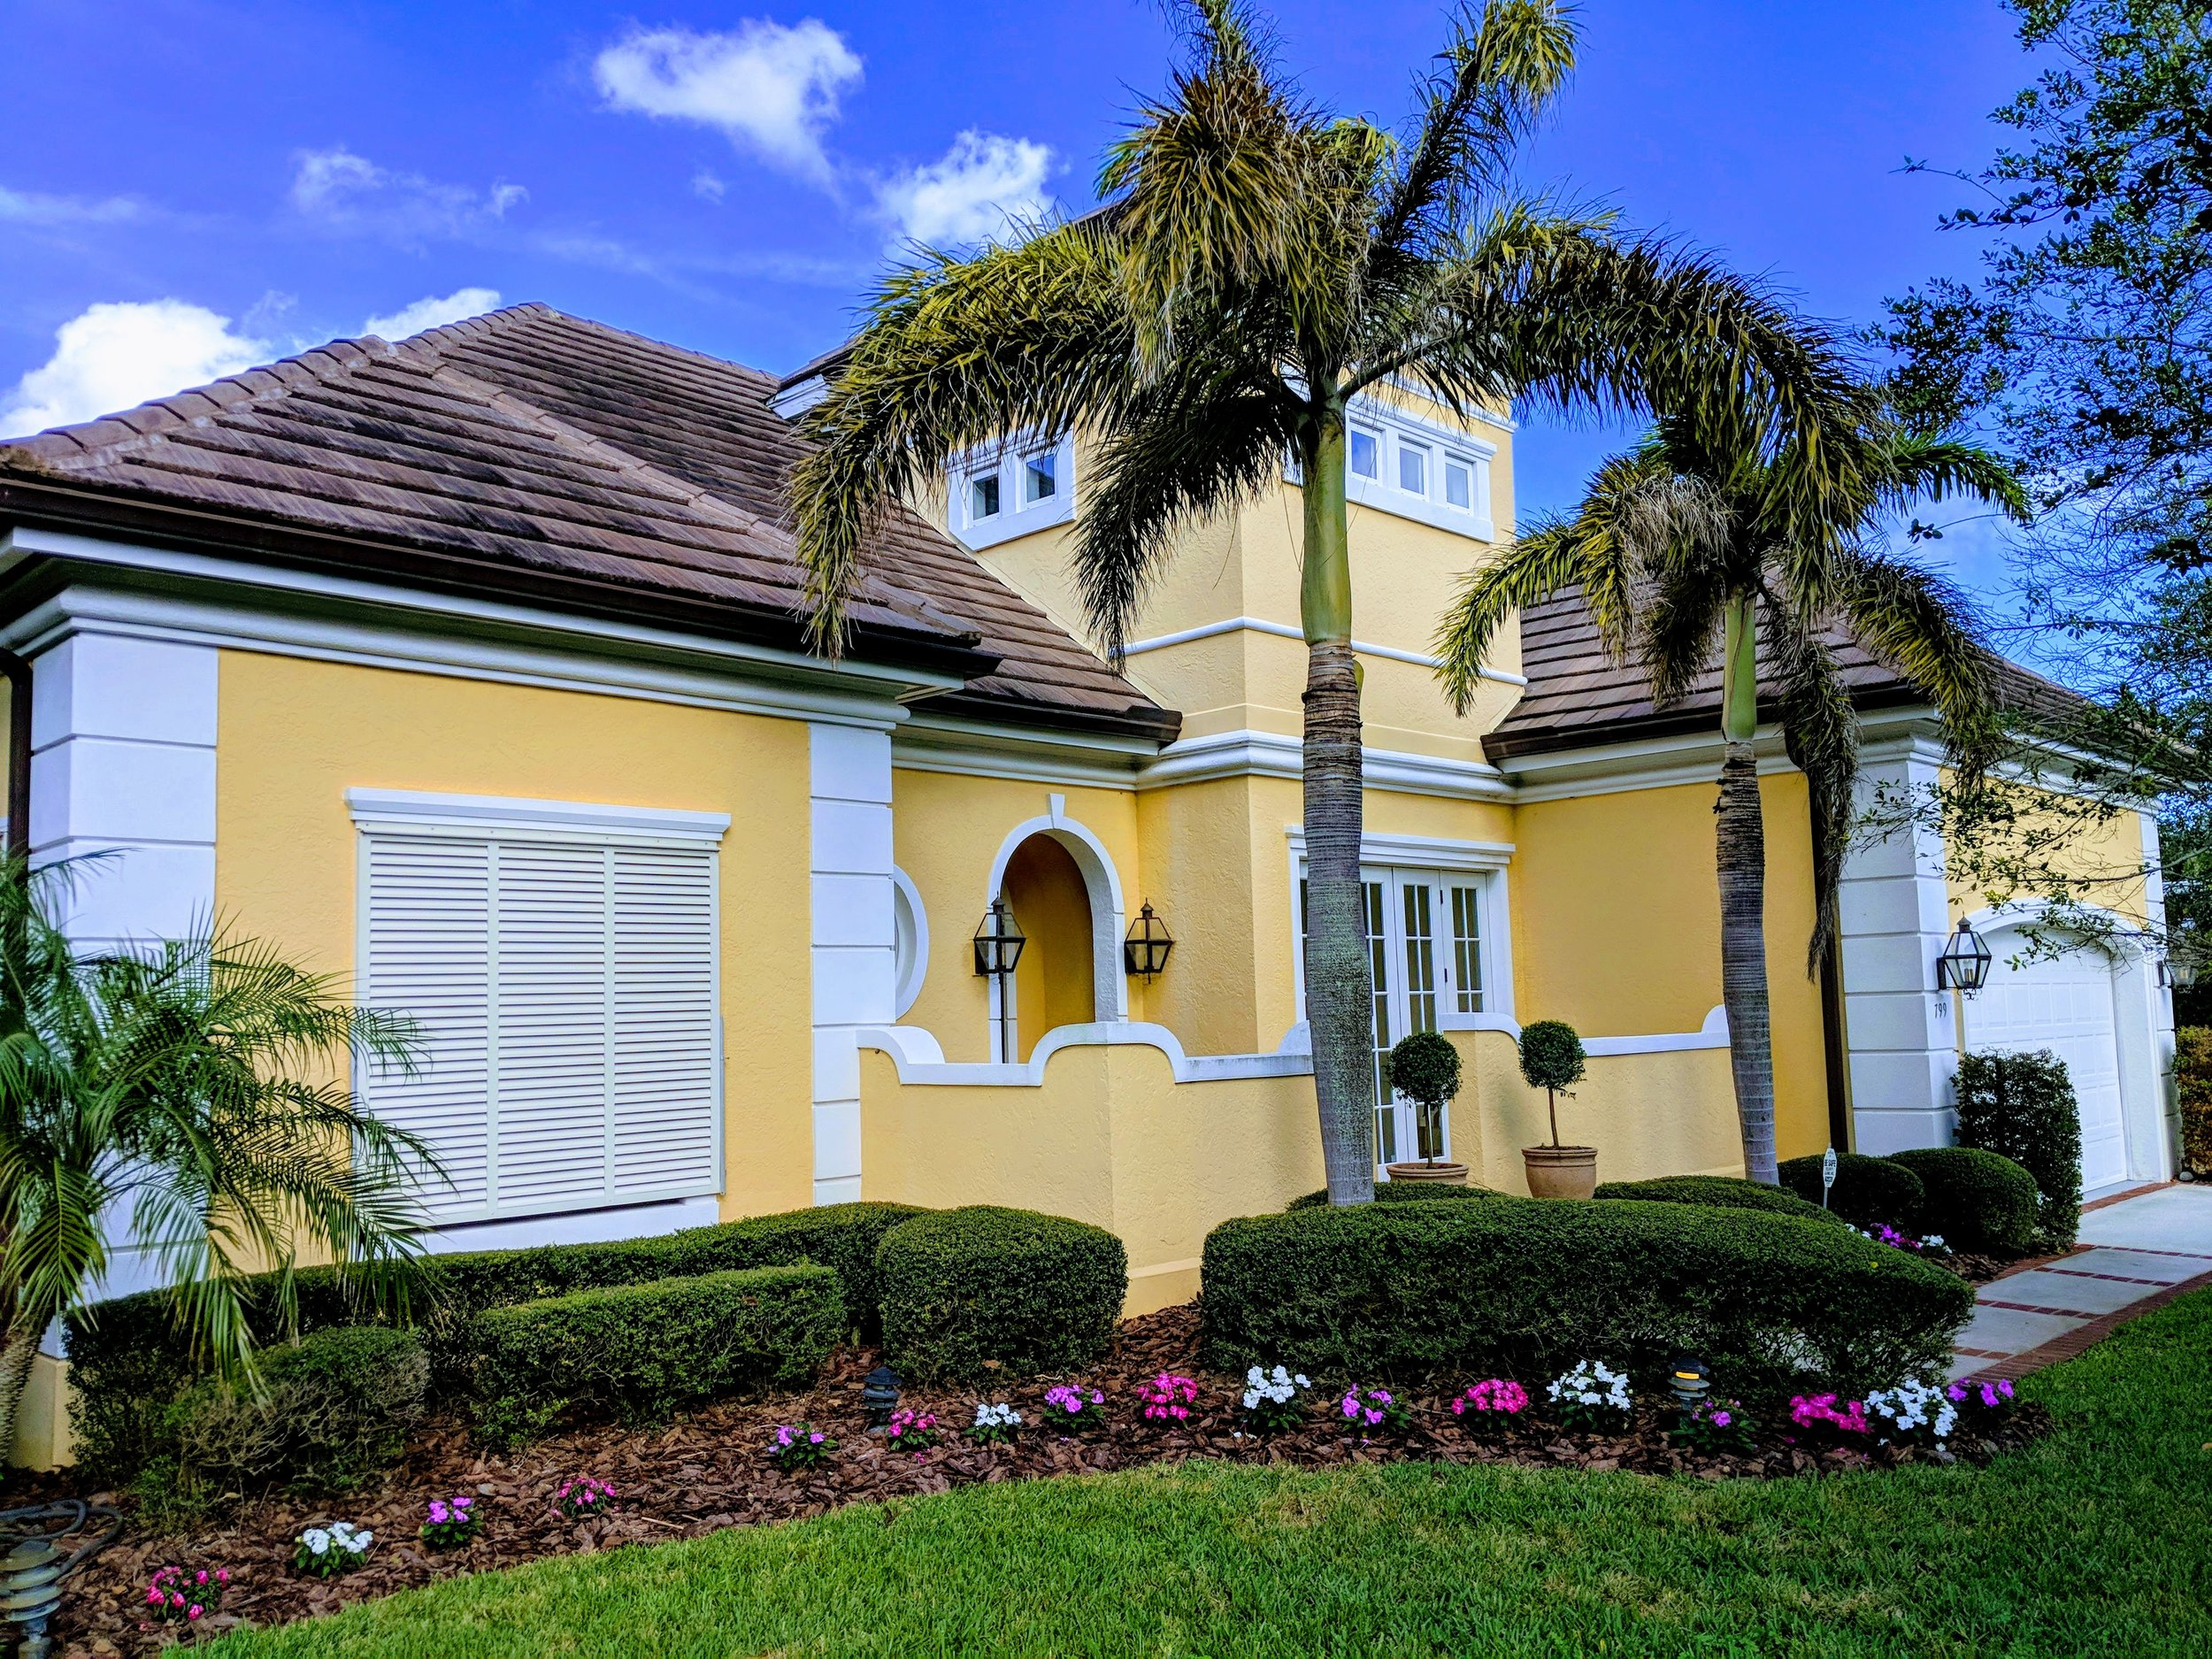 Exterior Painting - Call on Rick Reynolds Quality Painting for all your Exterior House Painting needs. We first will examine our exterior and provide you with our expect recommendation on any repairs required prior to paint or stain. Our team is experienced in a variety of siding and surface repairs at reasonable prices. After repairs, all surfaces and substrates will be washed and cleaned prior to exterior paint or stain applications. Once all the necessary preparation is completed, then we will apply the appropriate top quality paint or stain. You will be impressed with the results.